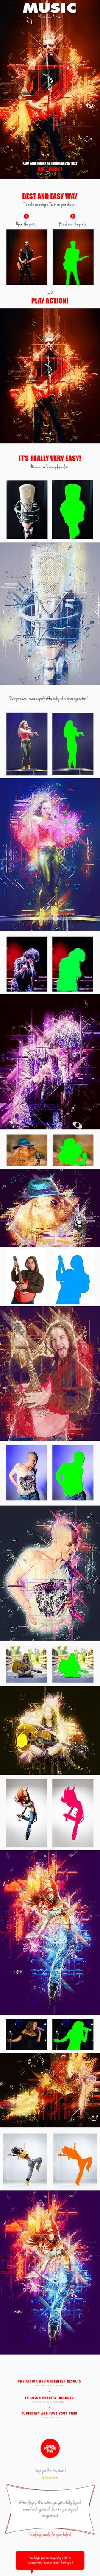 Music Photoshop Action - Photo Effects Actions #PSAction #Photoshop #PS #Graphicriver #PhotoEffects #Design #Art